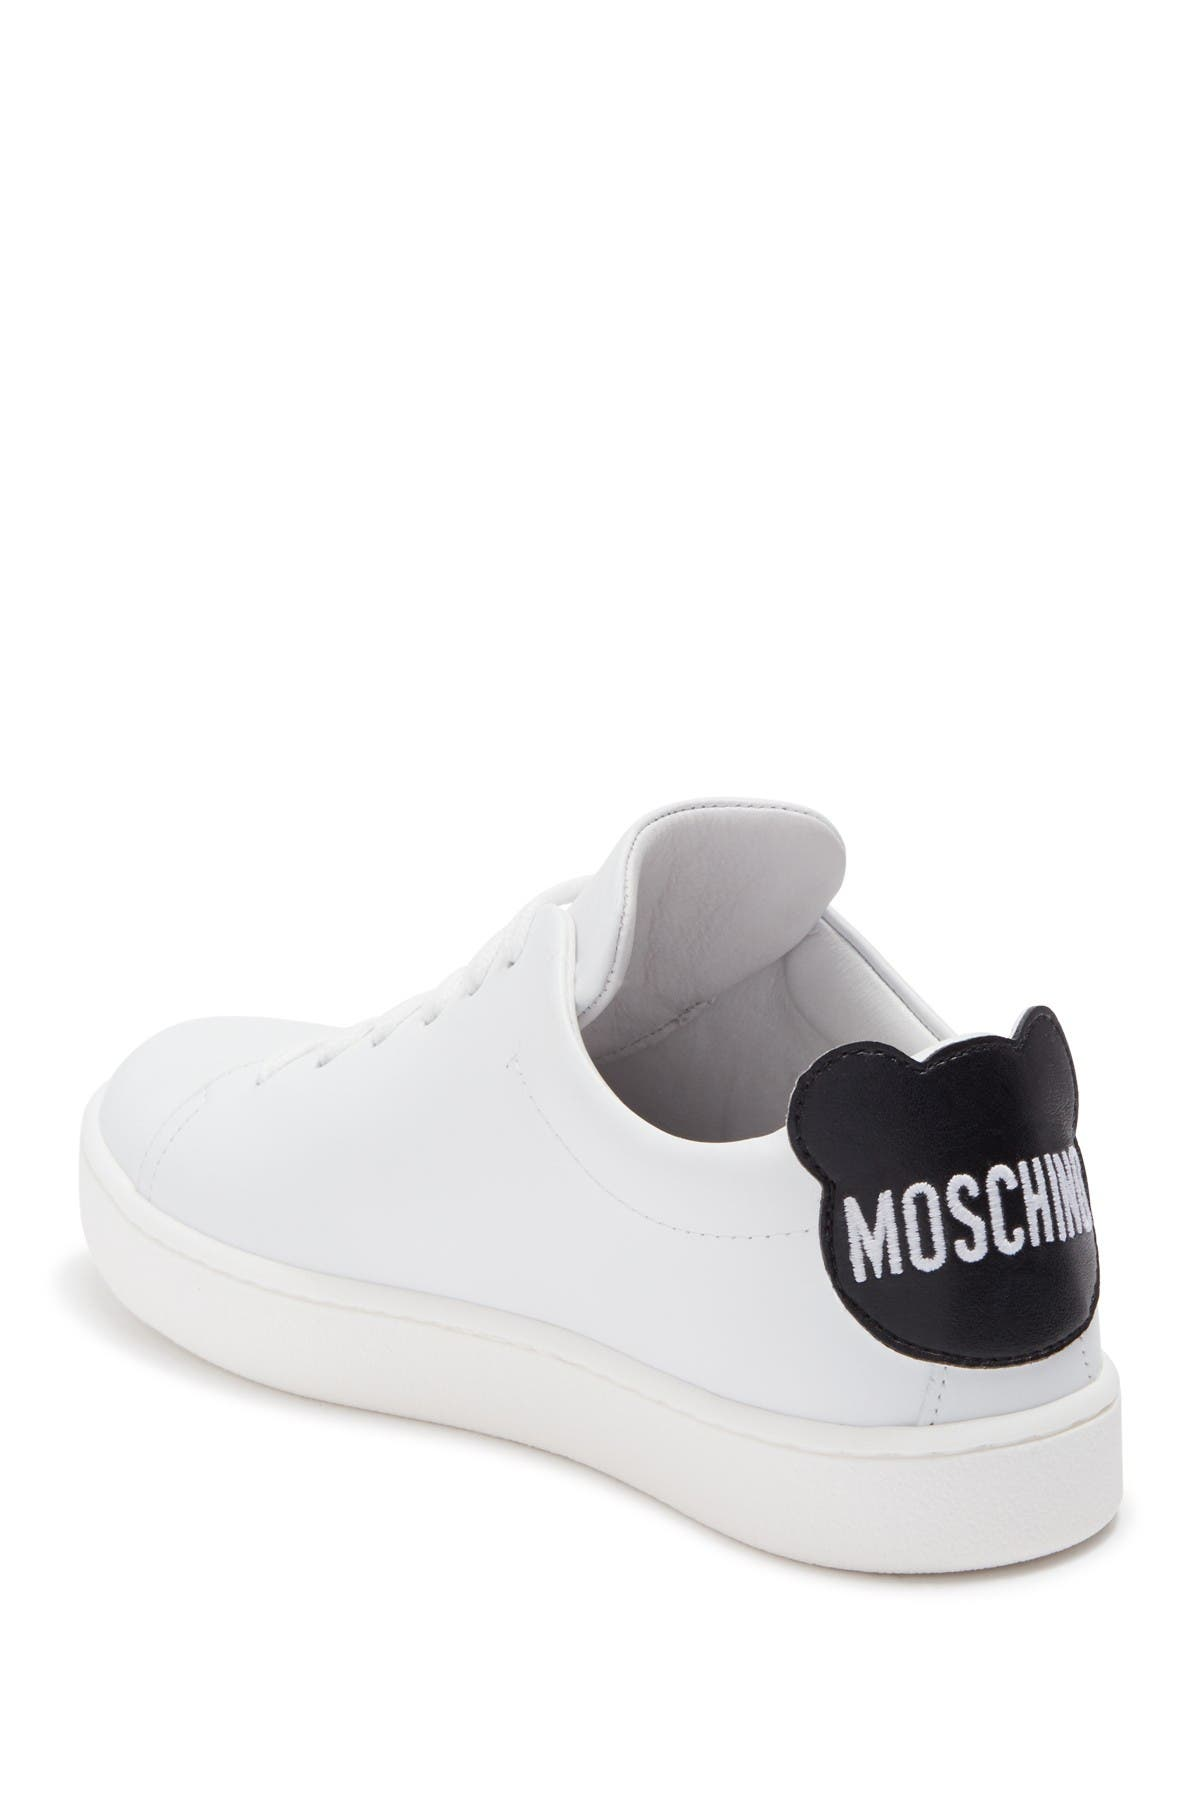 Image of MOSCHINO Bear Patch Sneaker